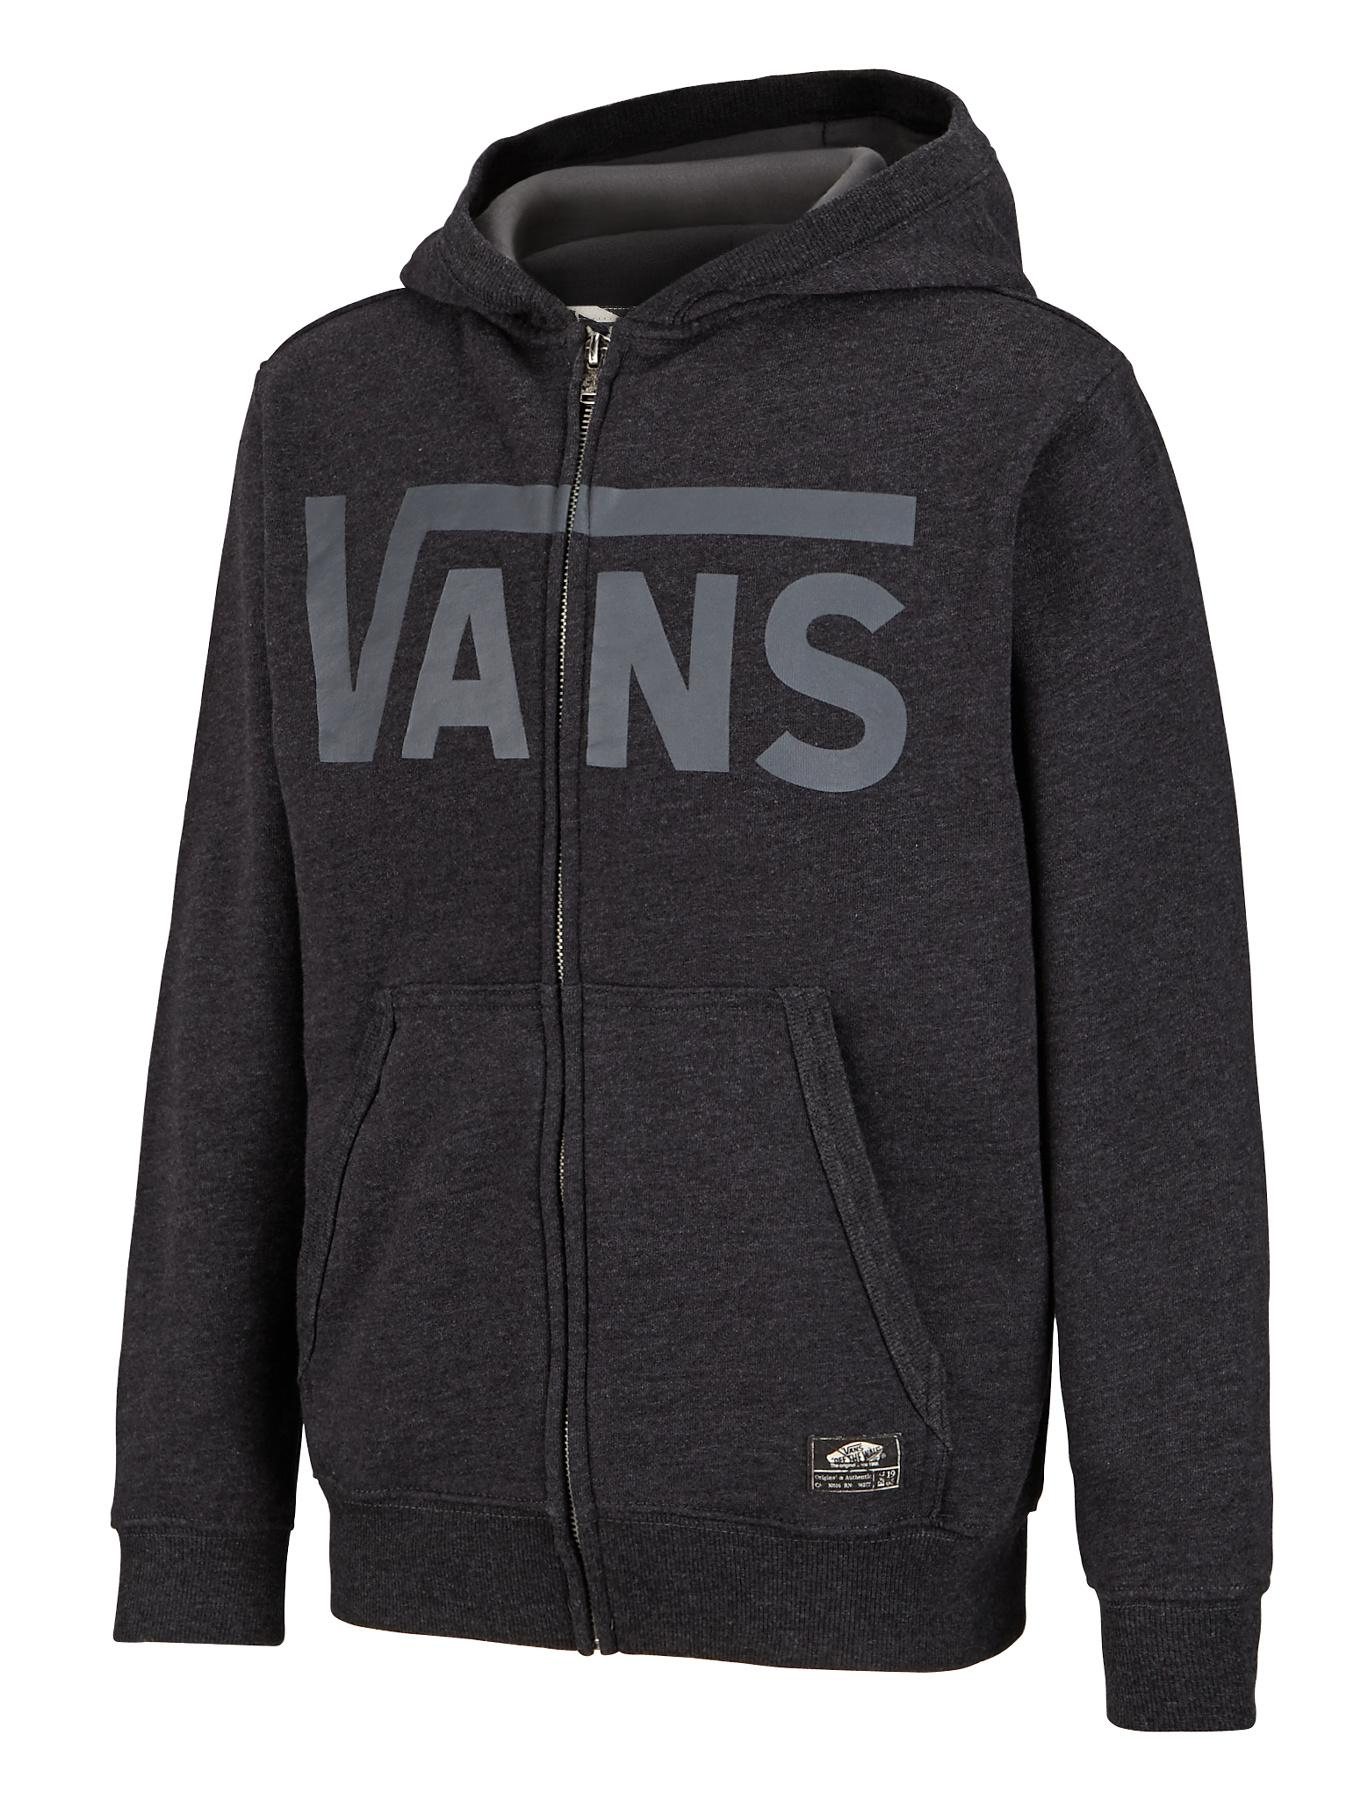 Youth Boys Classic Zip Hoody, Black